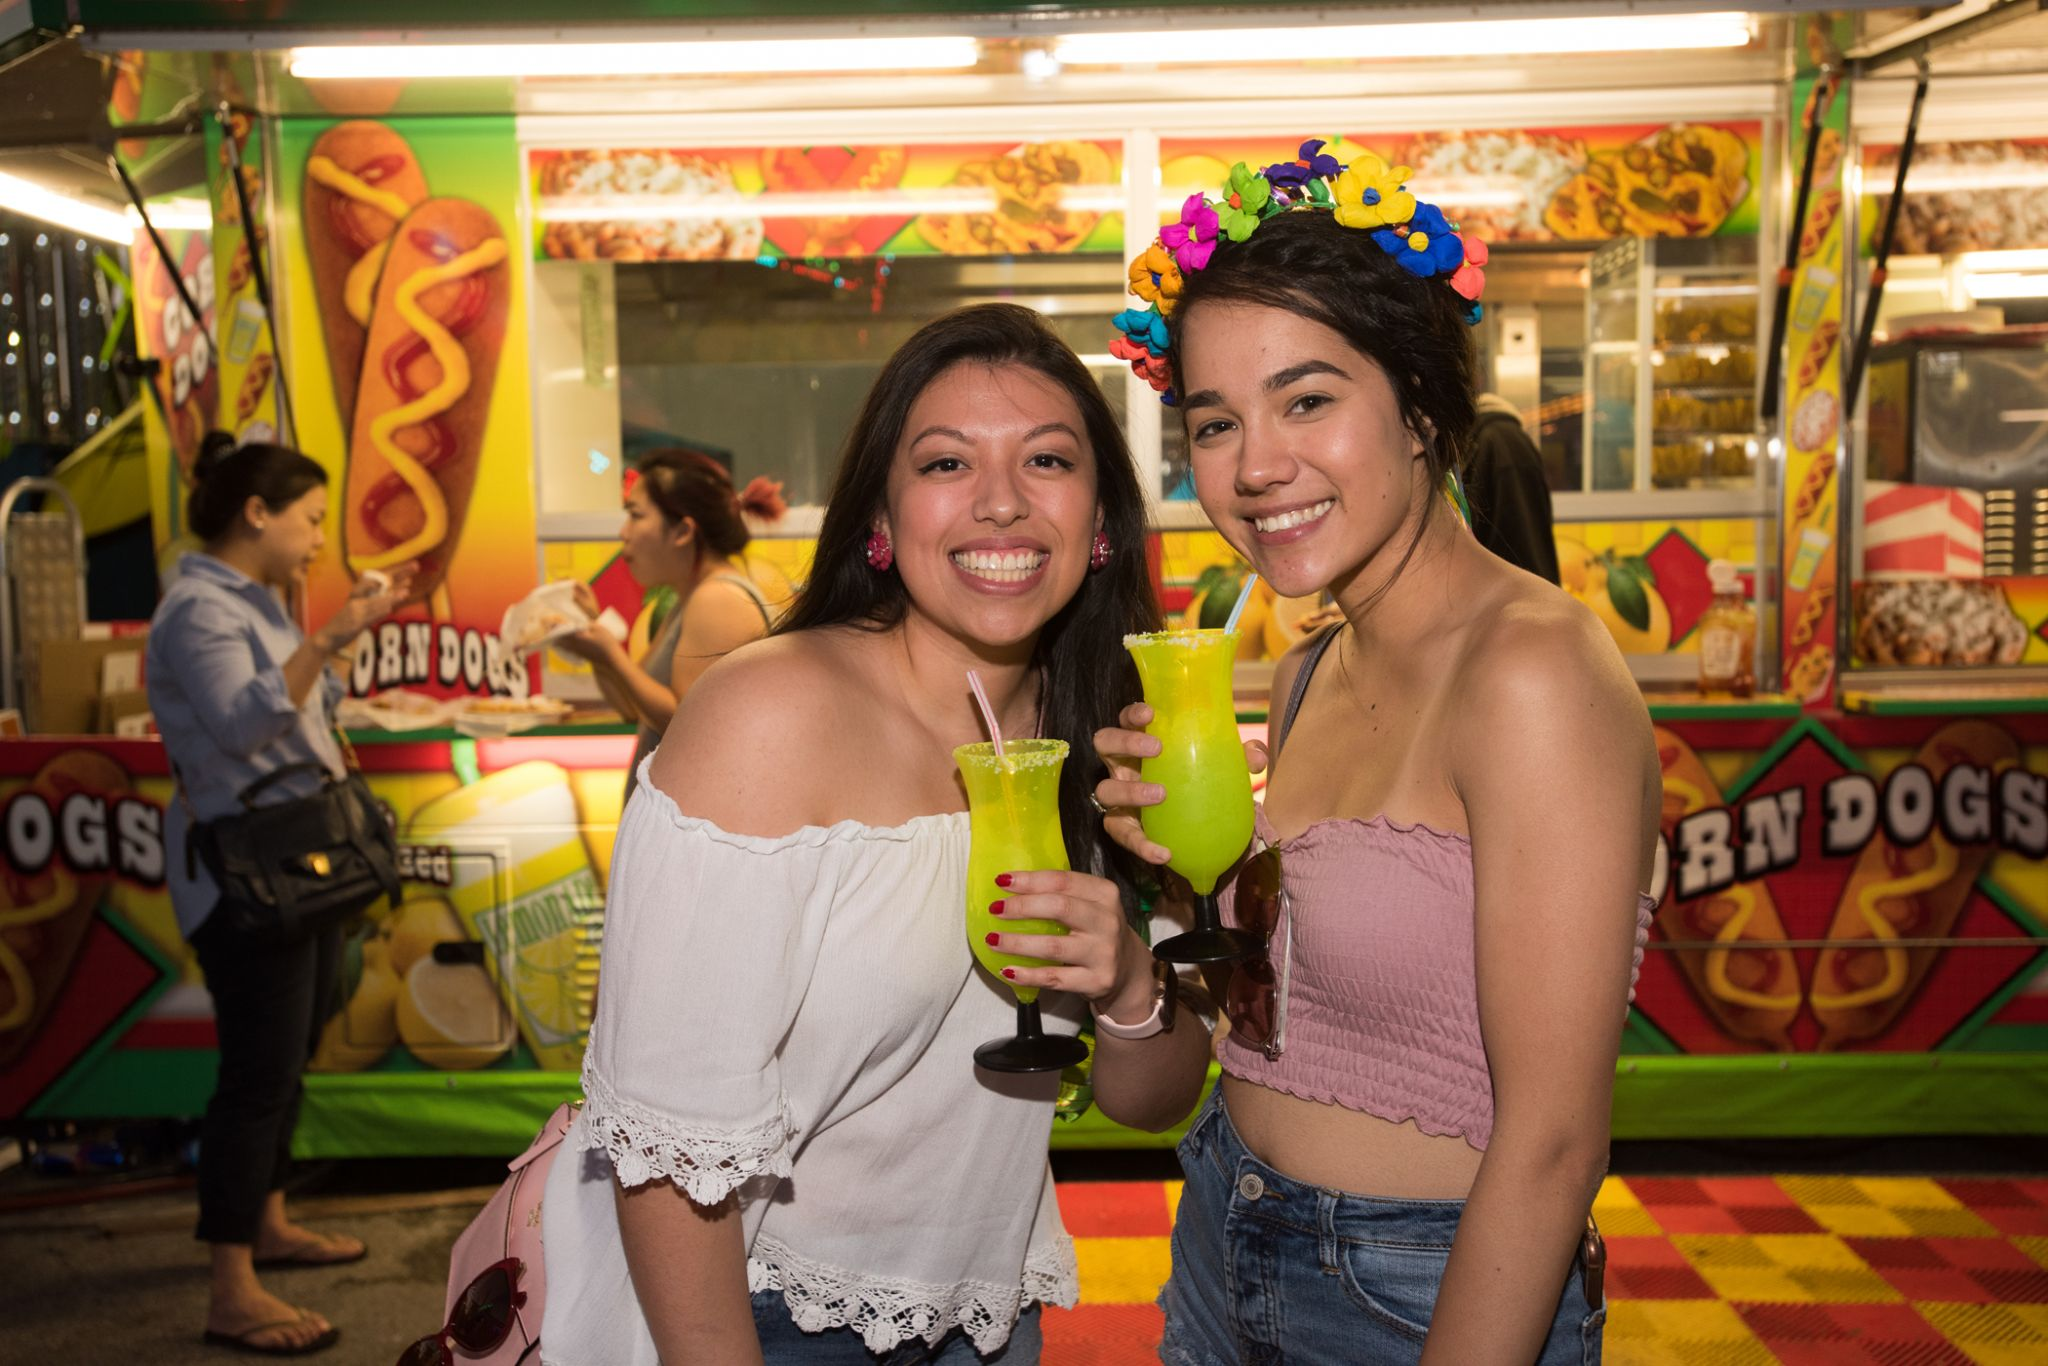 Fiesta Carnival brings hundreds out for prizes, food and rides